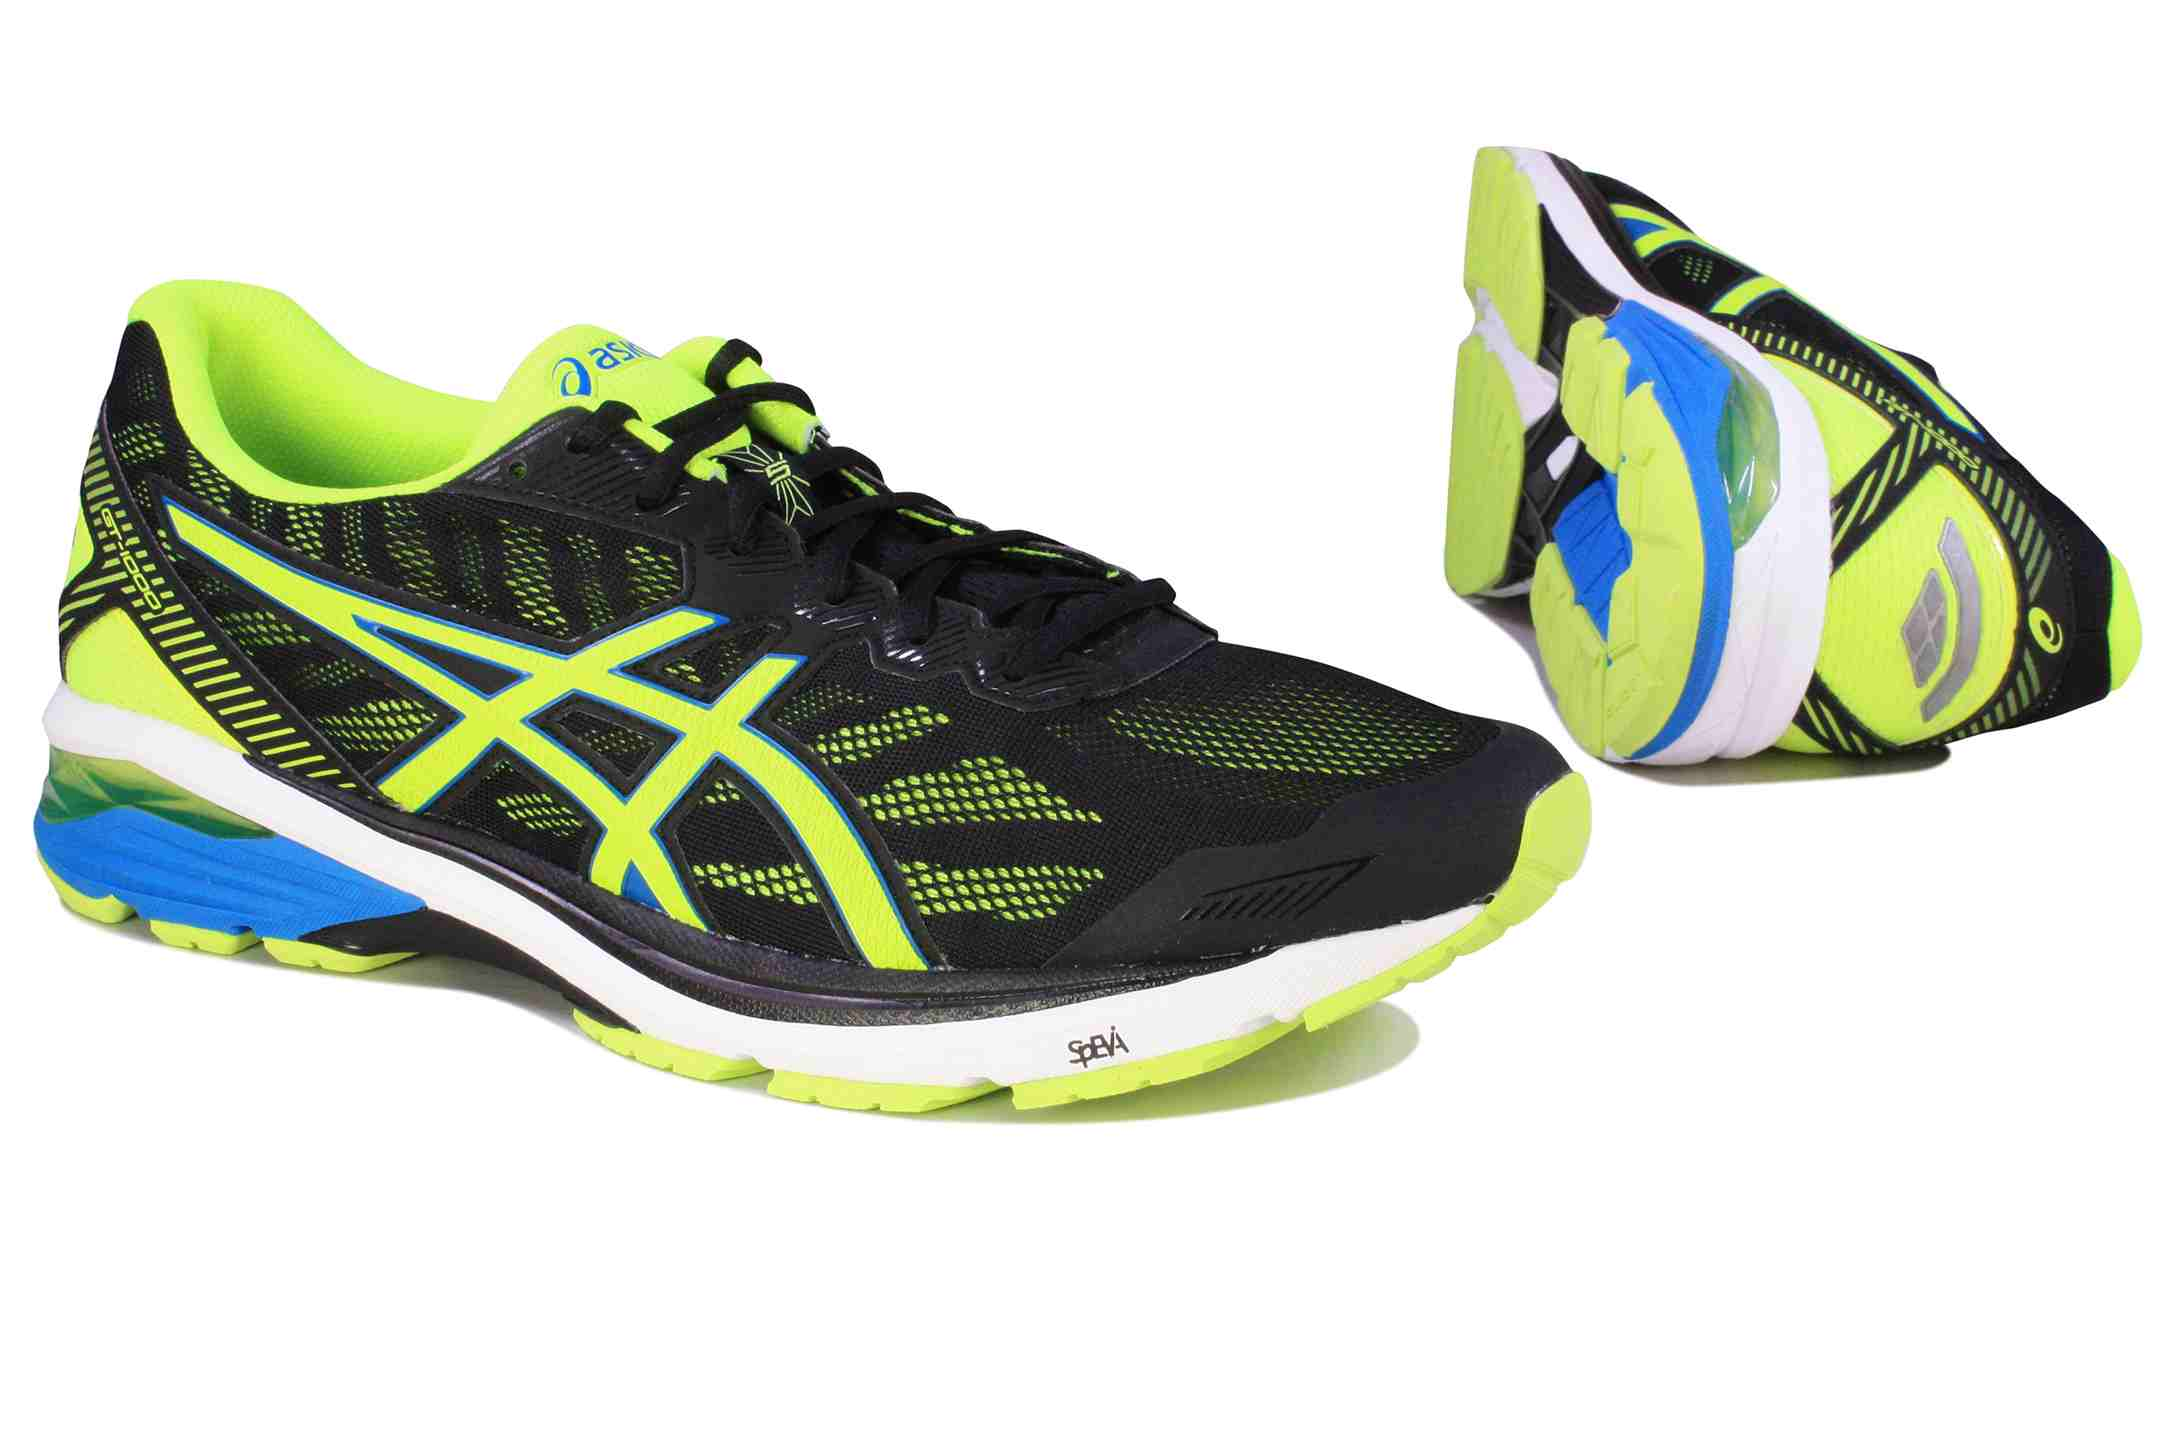 Autres chaussures 19999 pour chaussures hommes ASICS GEL GEL GT1000 5 T6A3N/ 9007 (taille: 14 , 16 b73a040 - www19216811.site